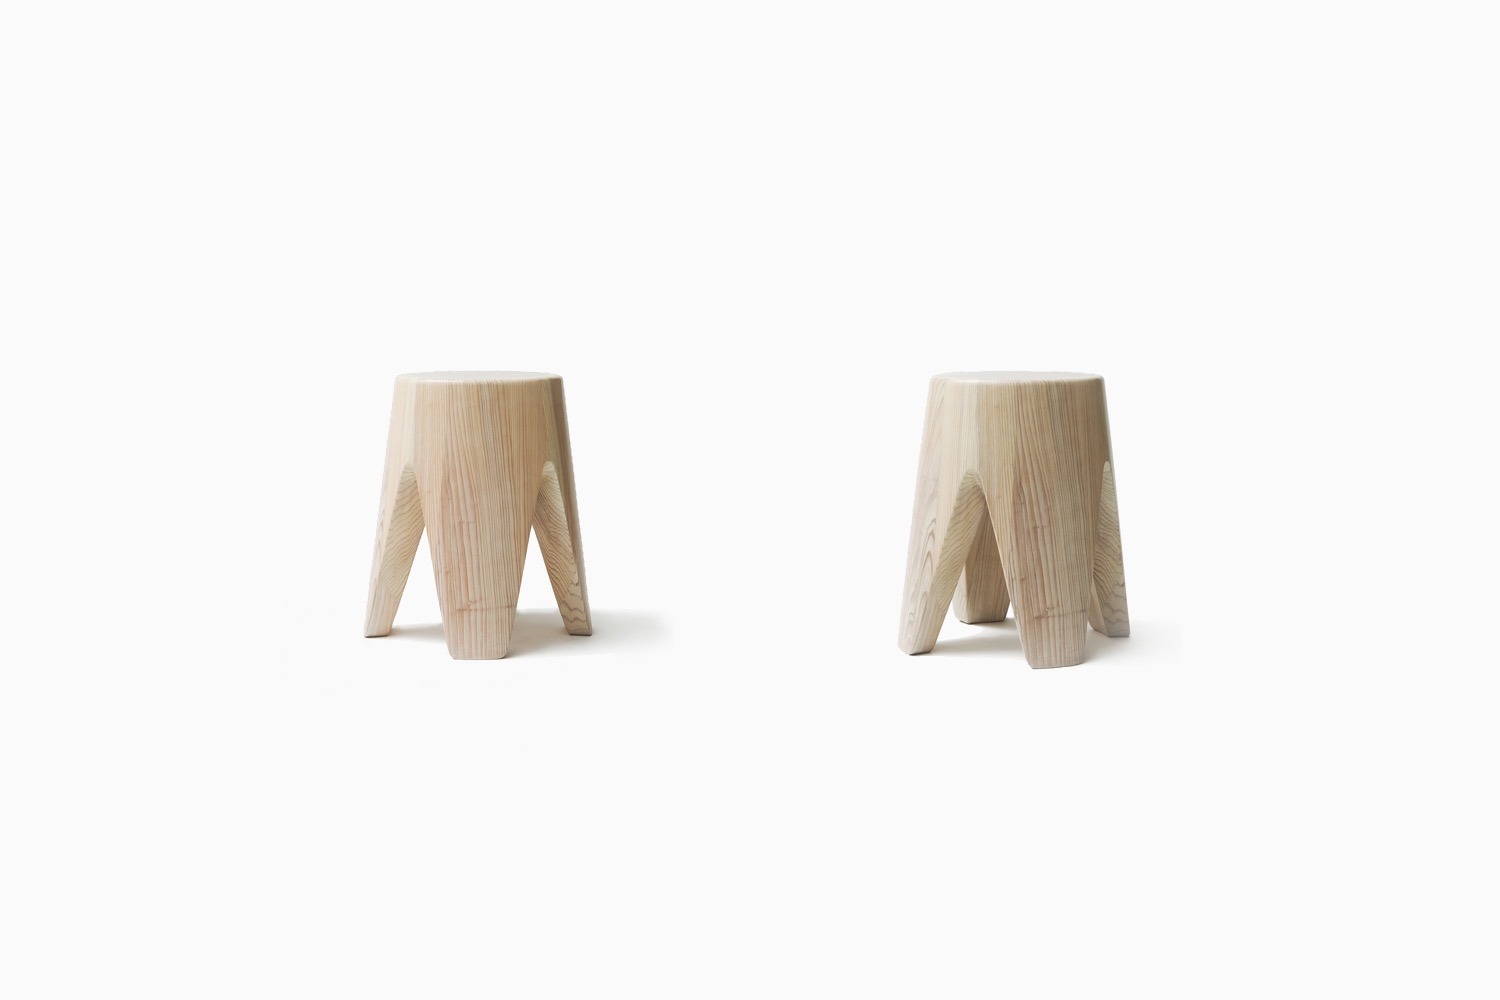 th_FIL06_Stool1